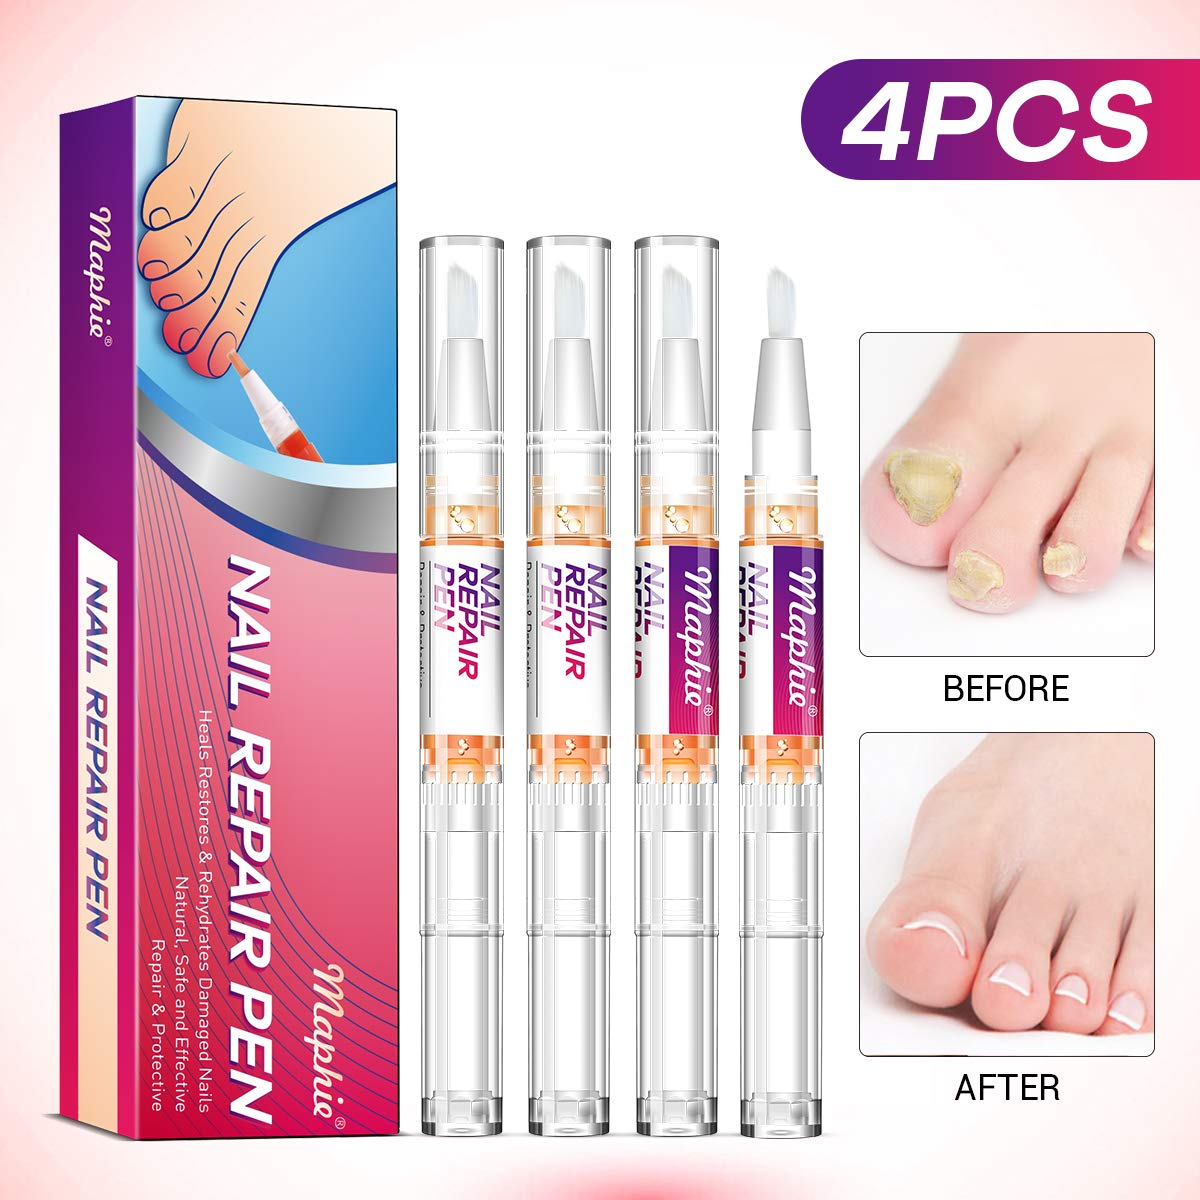 Nail Repair Pen,Toenail Treatment, Toenail Care,Solution Repairs & Protects from Discoloration, Brittle and Cracked Nails 4 pcs by MAPHIE